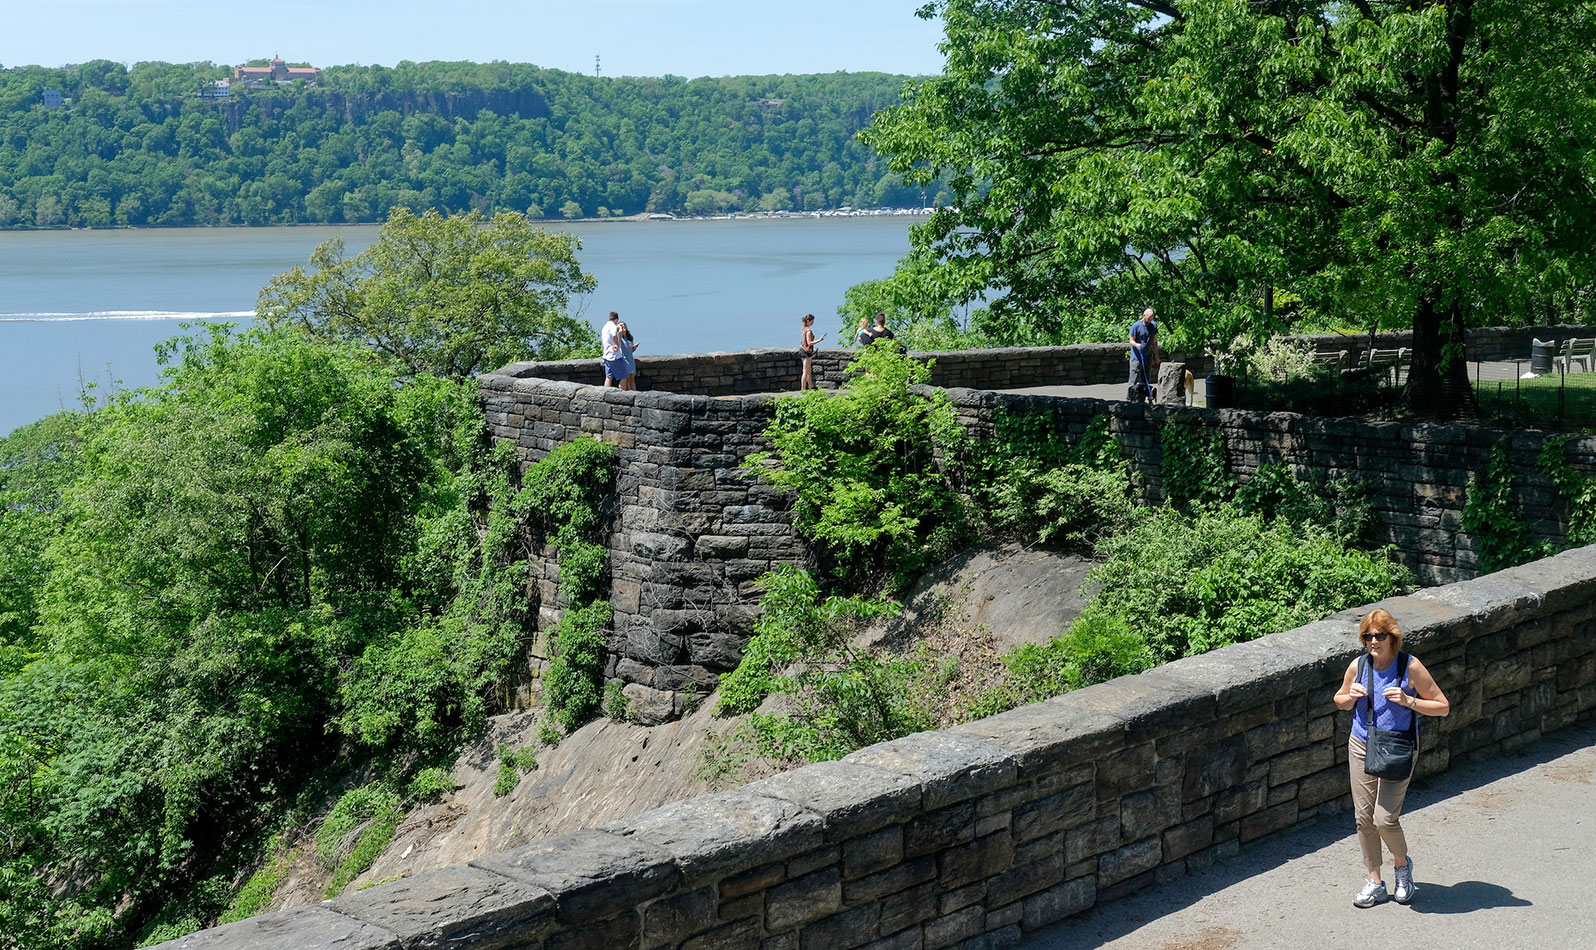 Head to the Cloisters Lawn to this overlook to capture one of the best scenic views from the park.